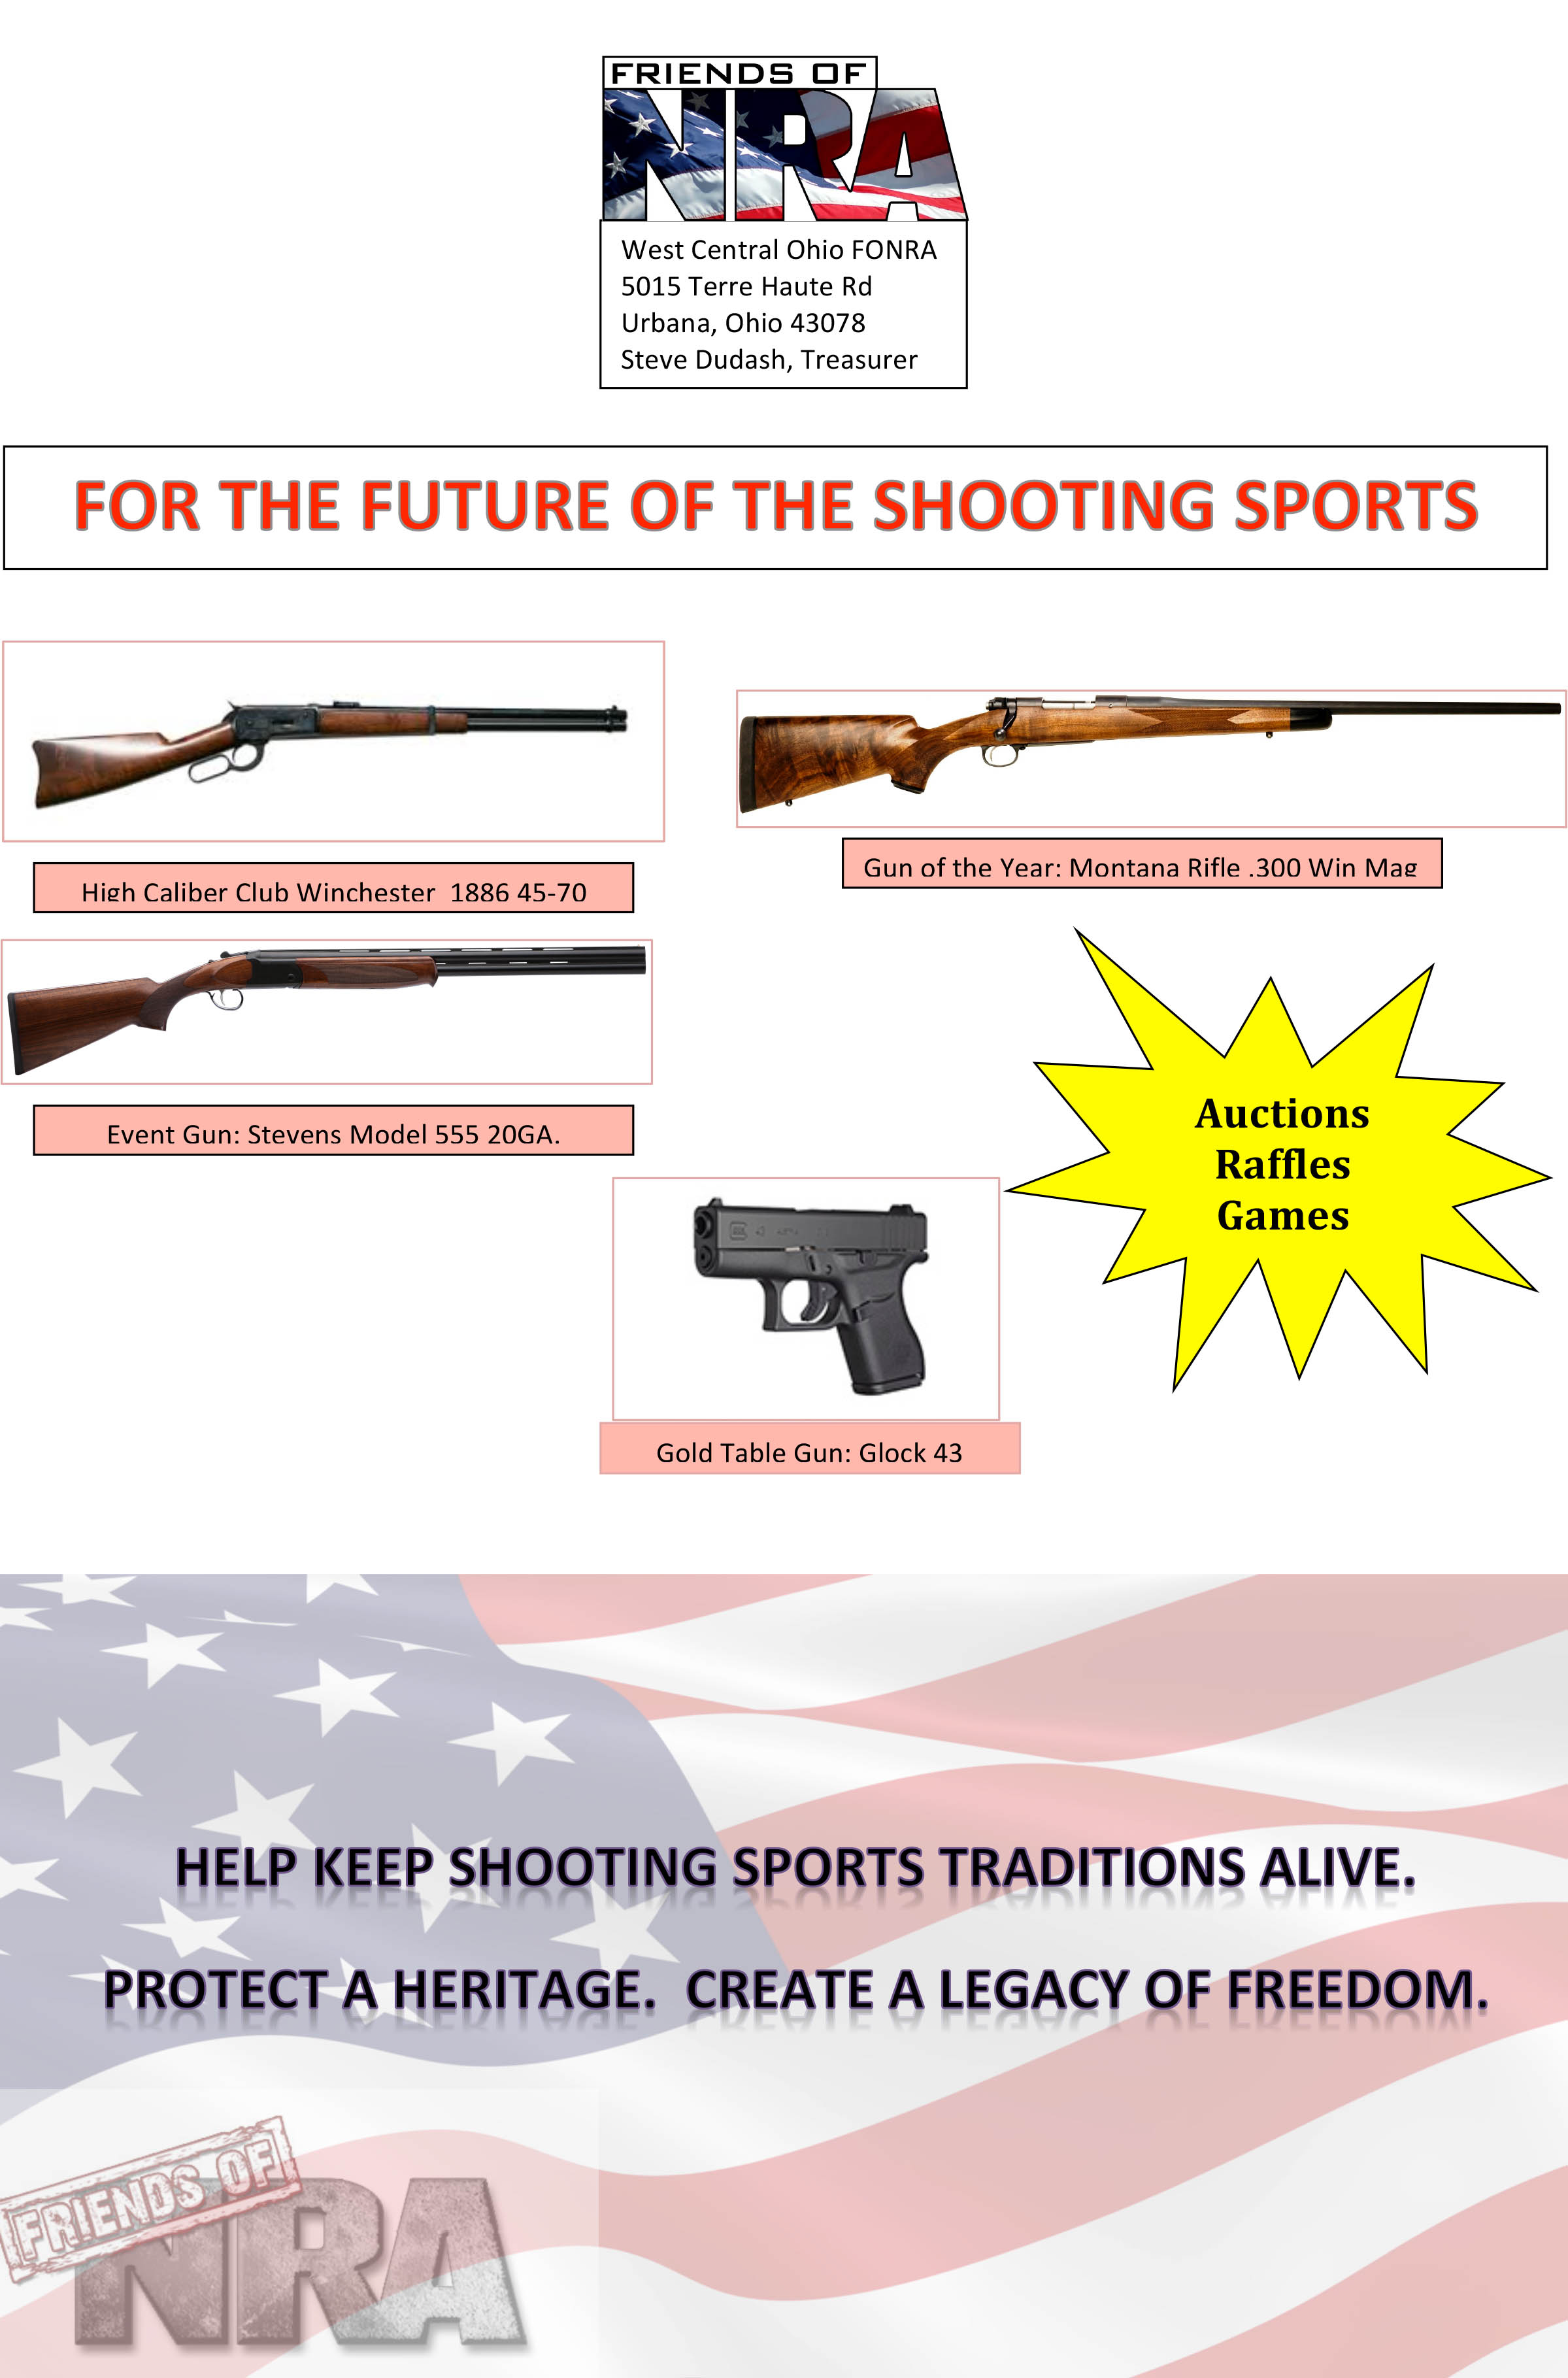 Ohio champaign county urbana 43078 - West Central Ohio Friends Of Nra Flyer 2